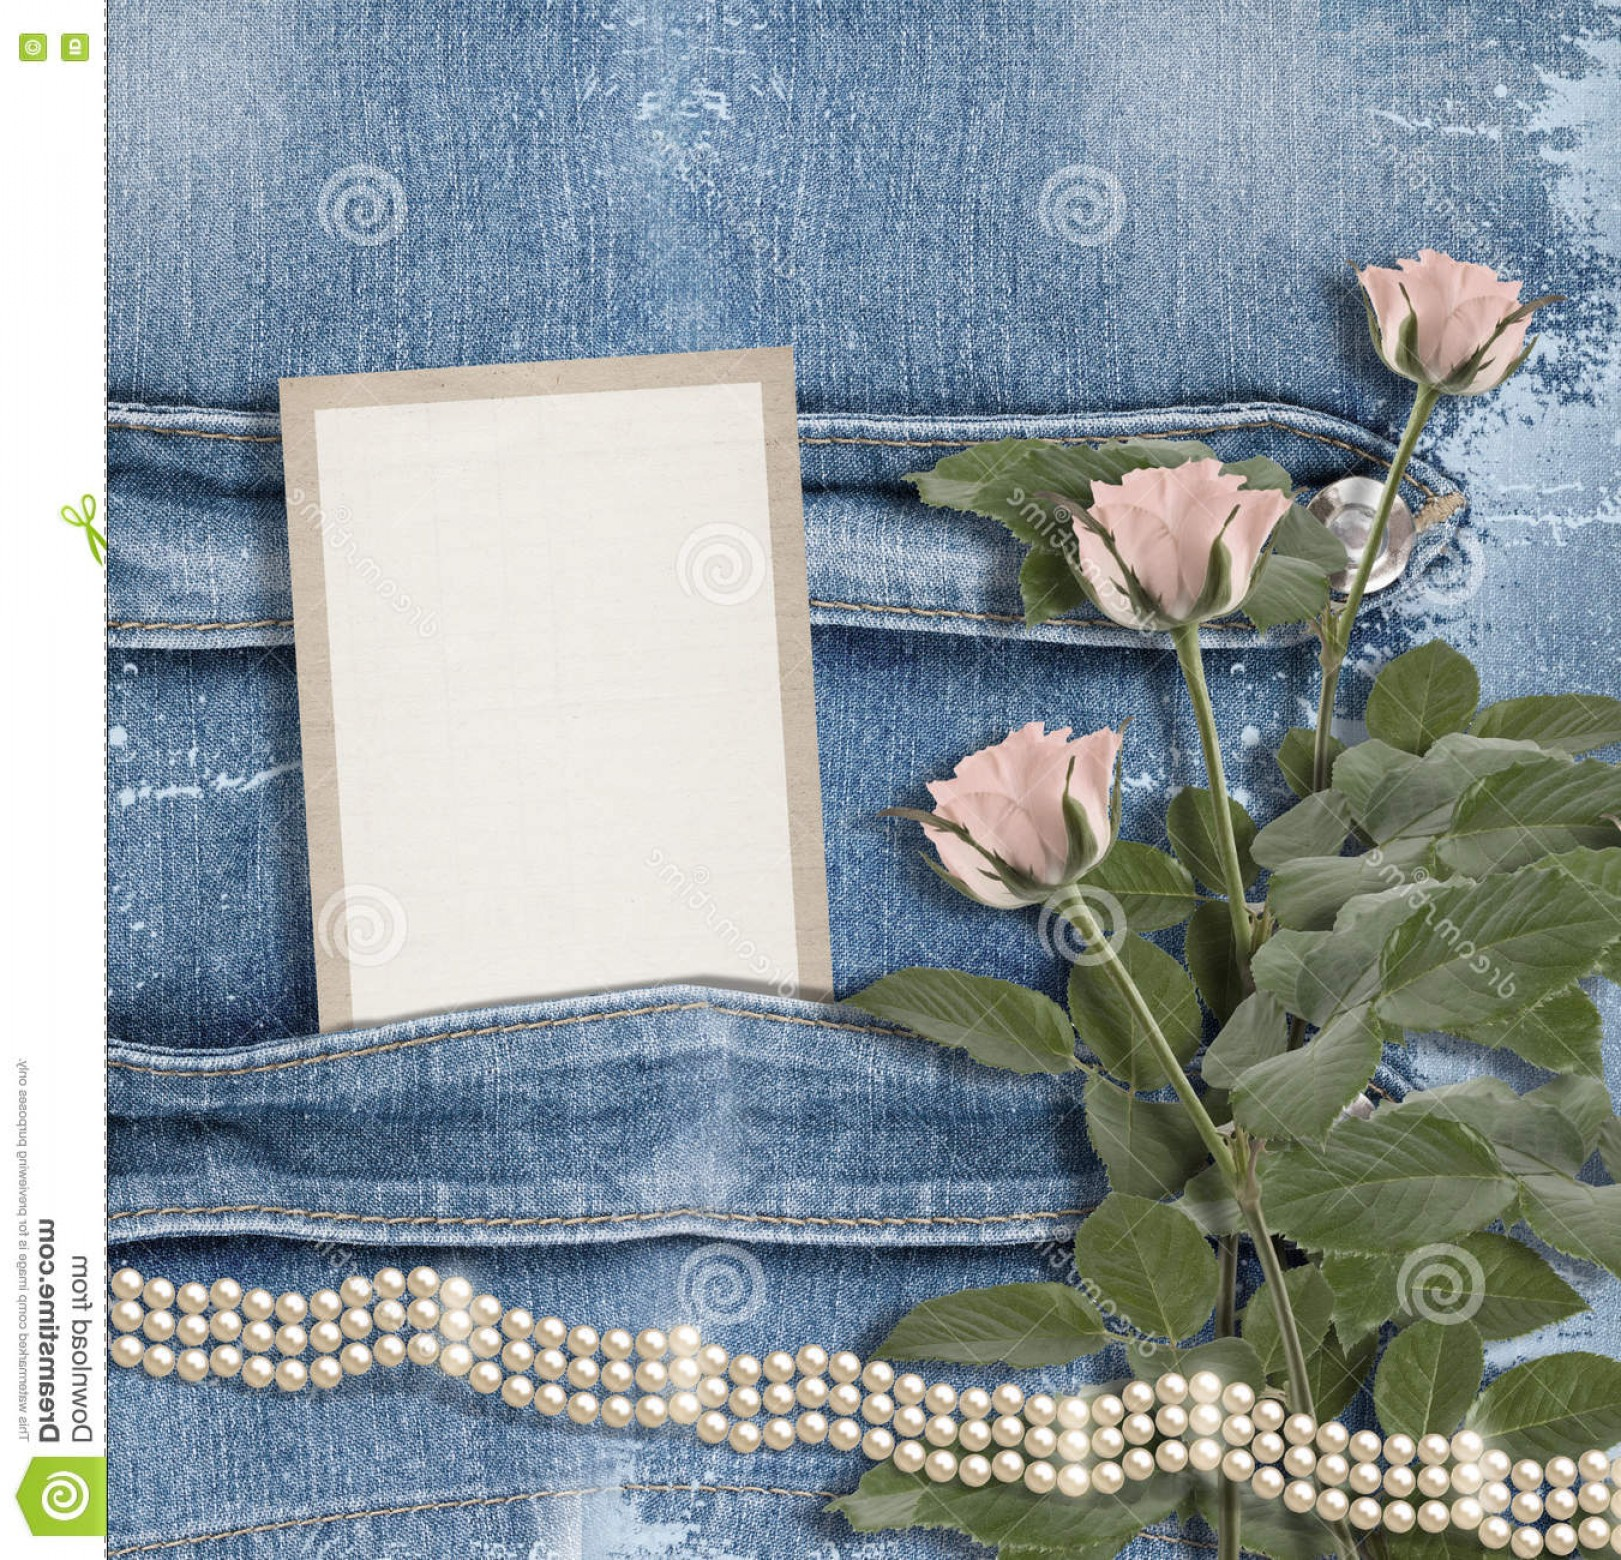 Denim And Pearls Vector: Stock Photo Old Denim Background Paper Frame Pearls Pink Roses Image